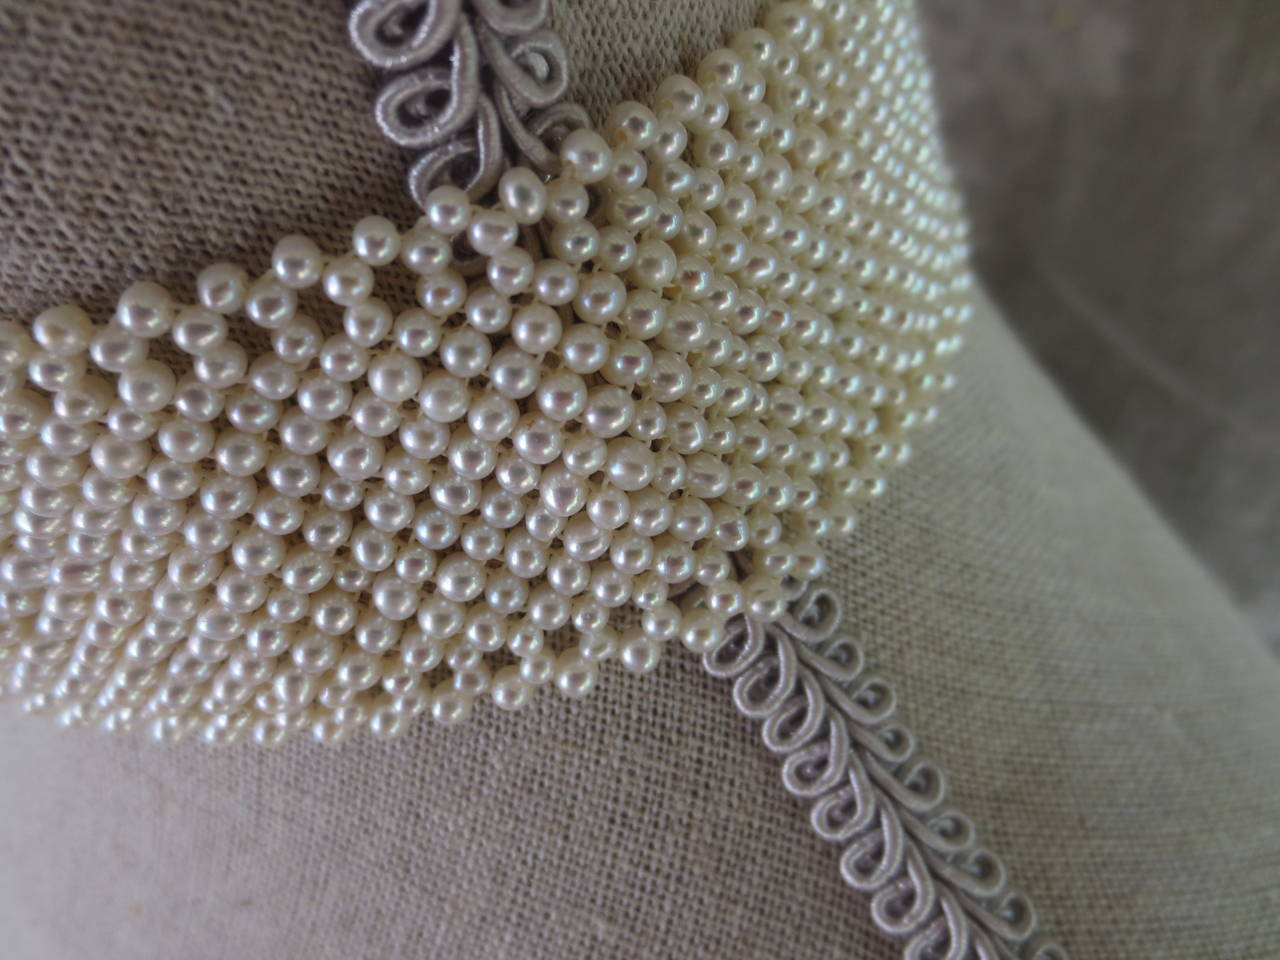 Marina J. Woven Pearl Choker Necklace In Excellent Condition For Sale In Beverly Hills, CA